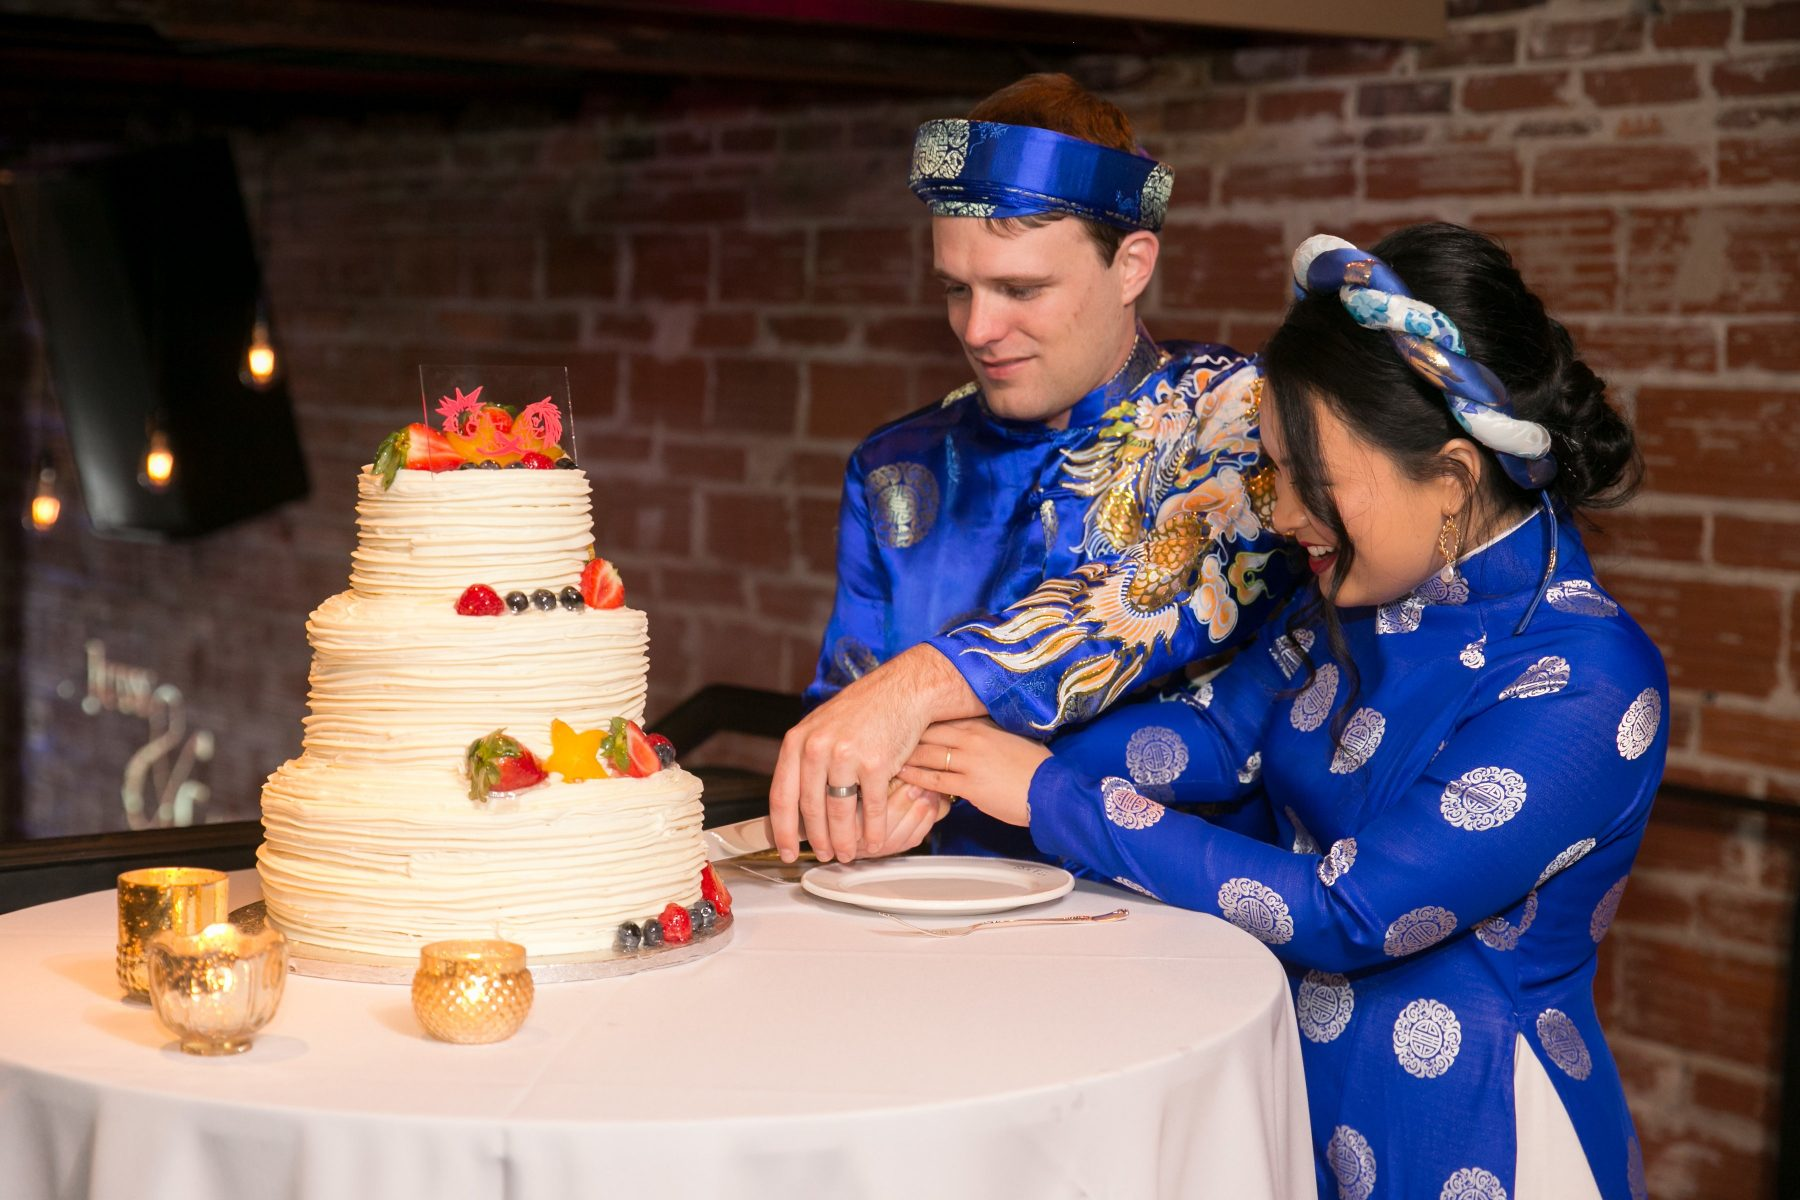 Bride and groom in traditional Vietnamese wedding outfits cutting cake | Multi-Cultural St Pete Wedding